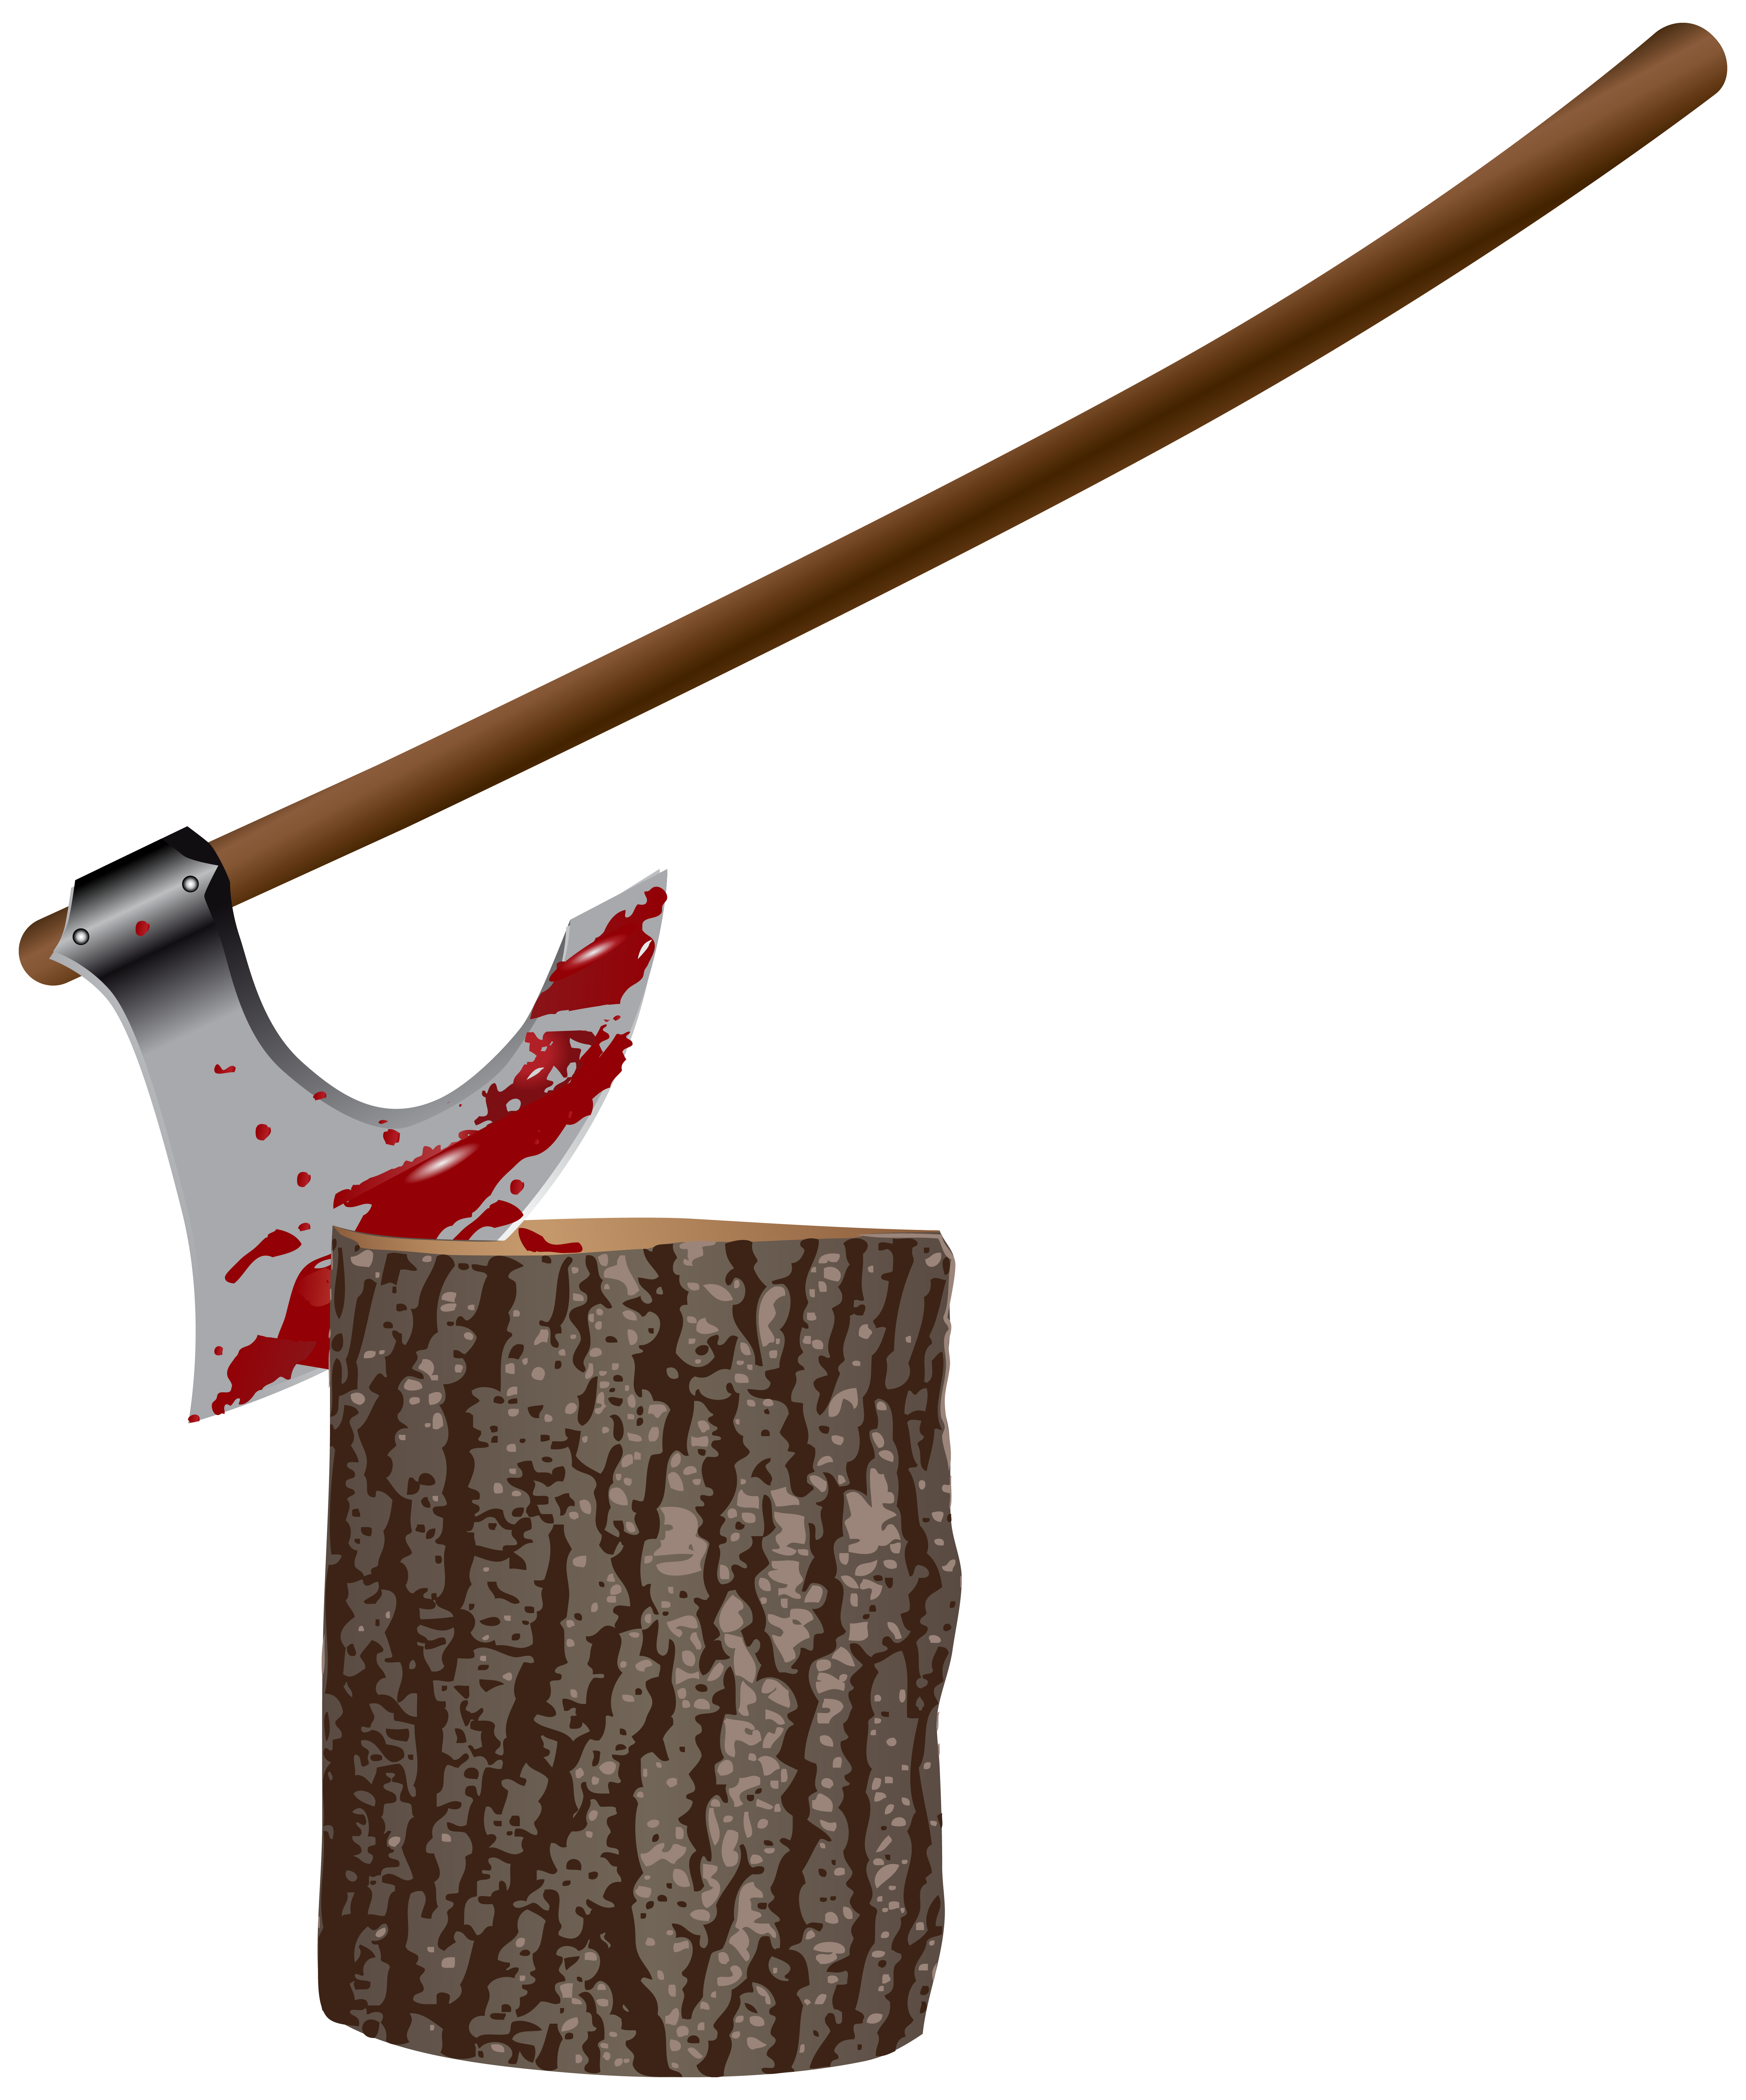 Bloody spear png. Ax and stump clipart